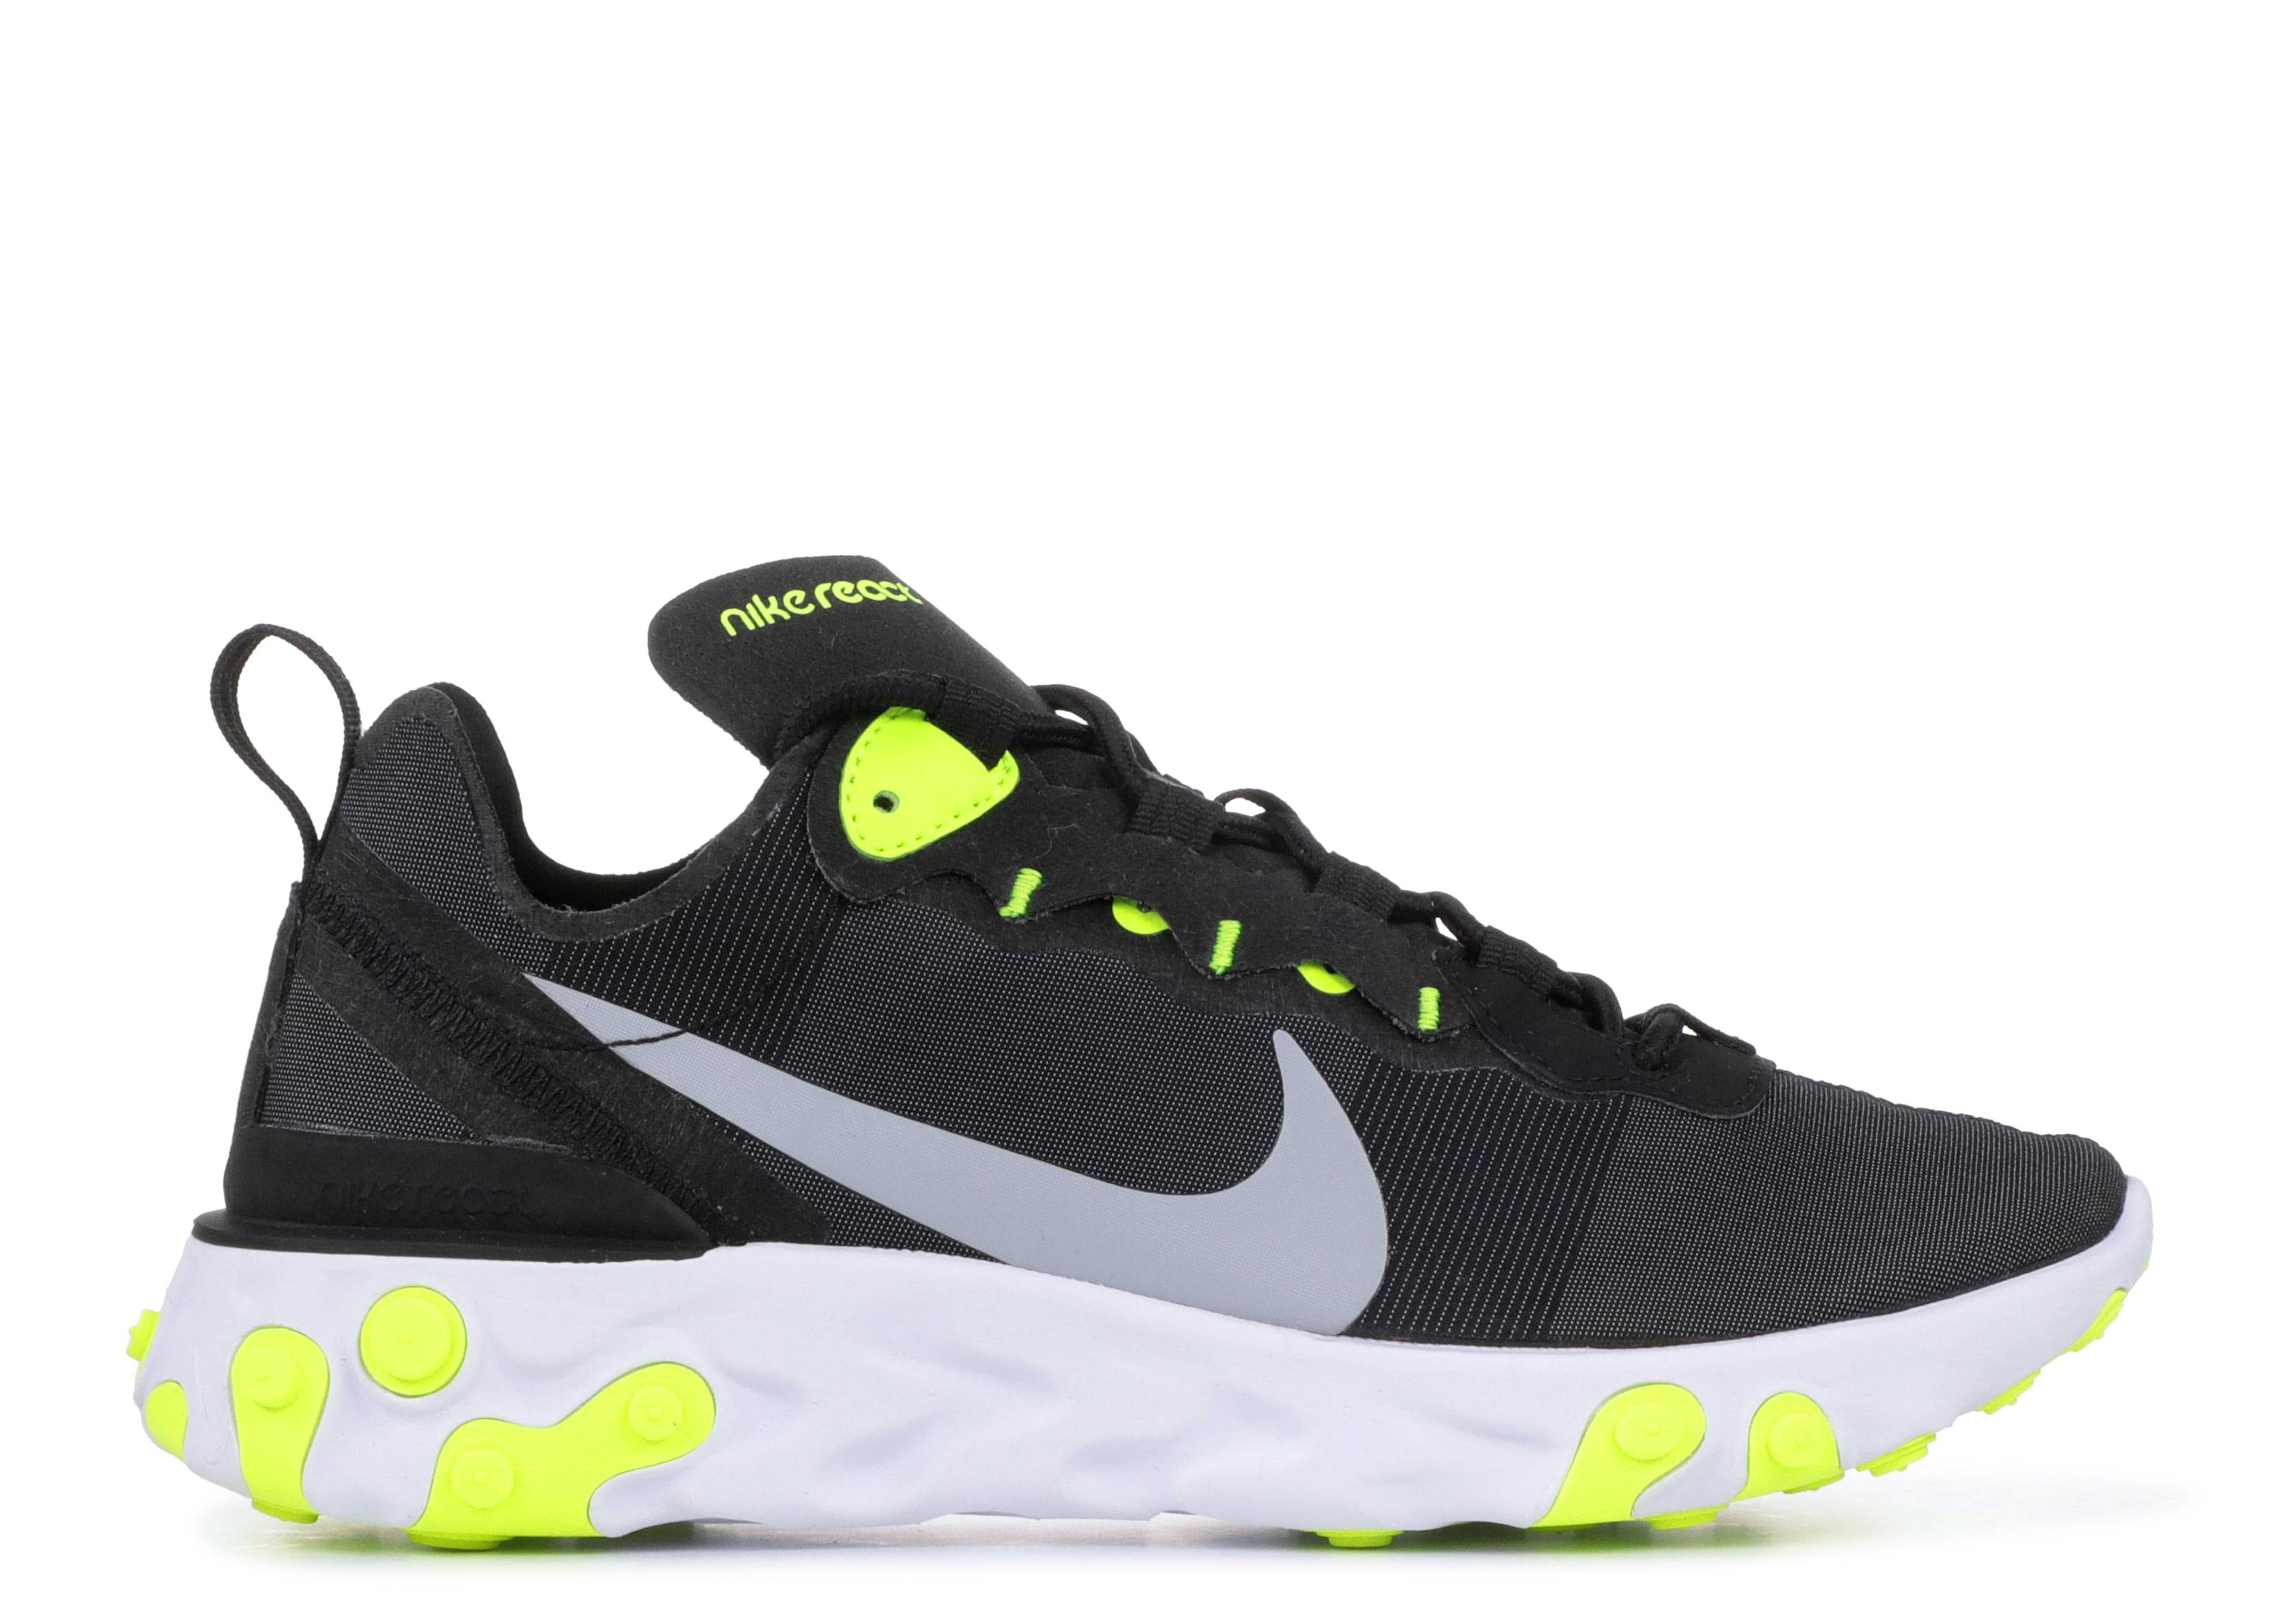 "Wmns React Element 55 'Black Volt' ""Black Volt"""